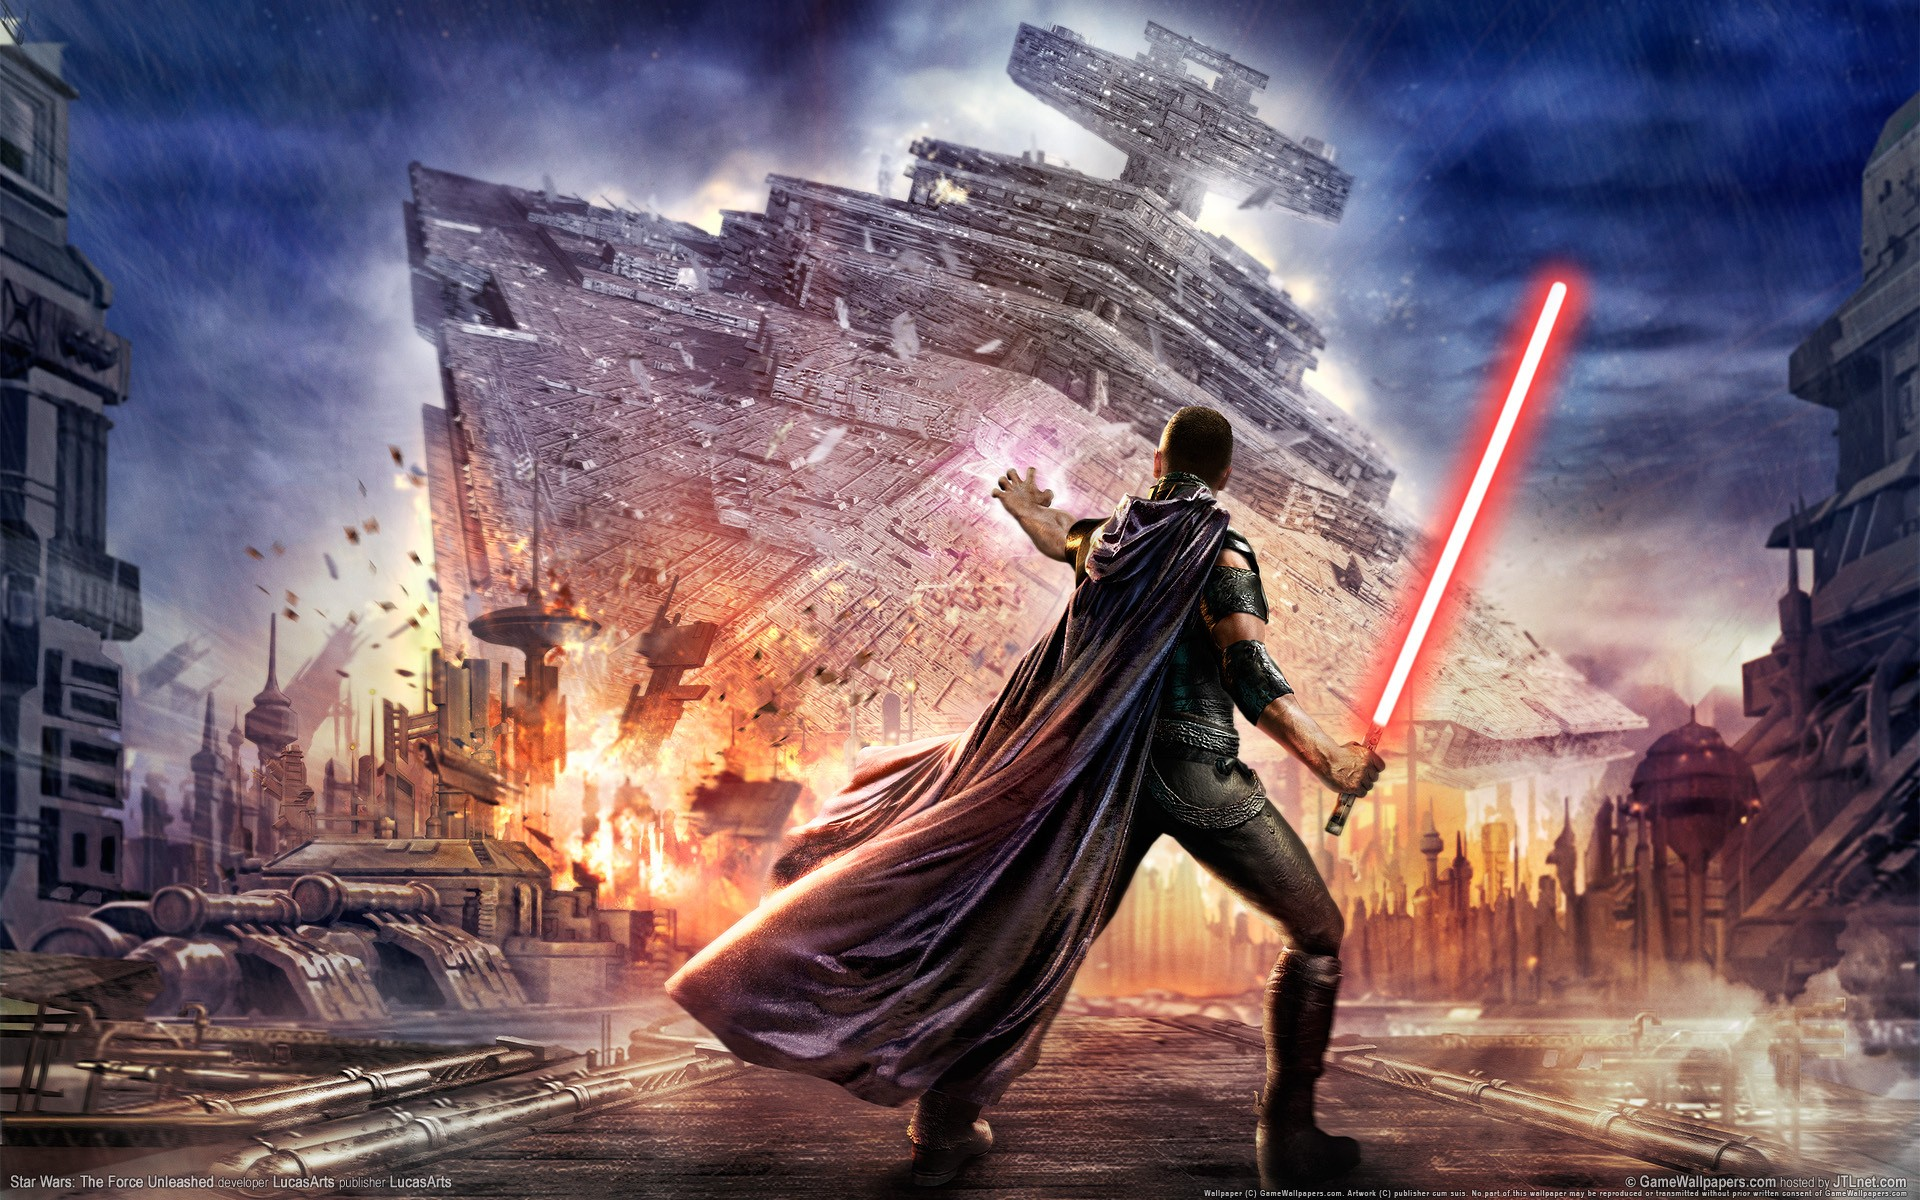 1360x768 Star Wars The Force Unleashed Lightsaber Desktop Laptop Hd Wallpaper Hd Games 4k Wallpapers Images Photos And Background